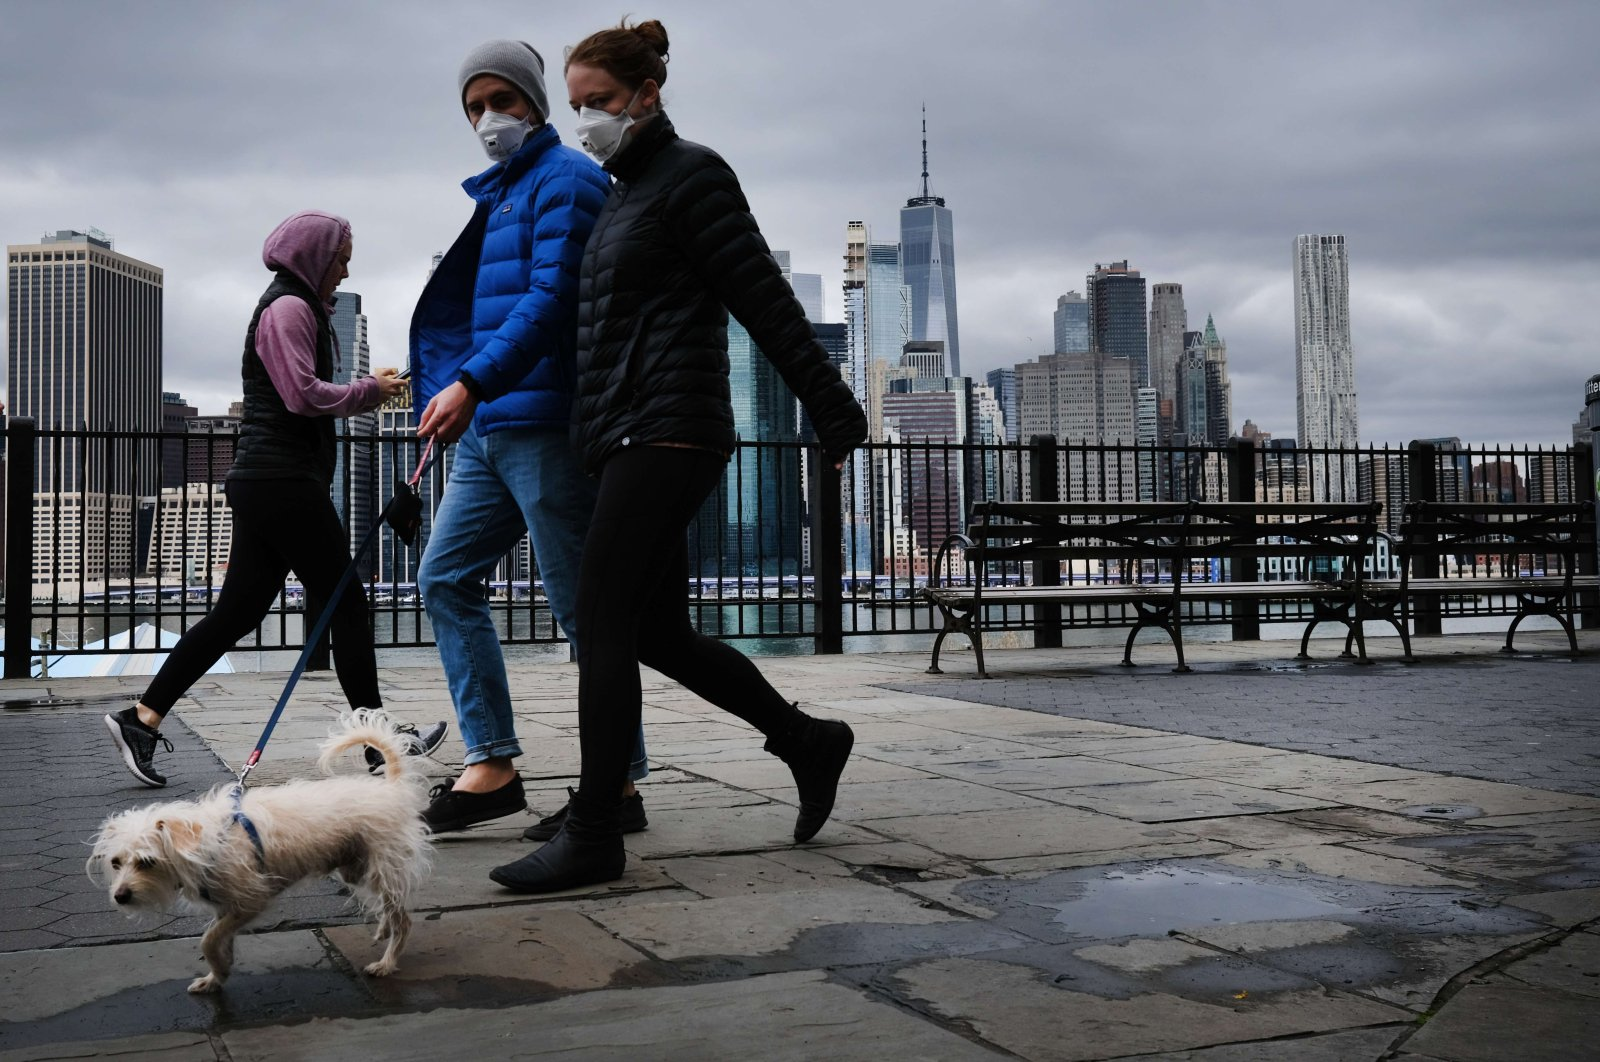 The Manhattan skyline stands in the distance as people try to get some time outside in Brooklyn, New York City, on Saturday, April 4, 2020. (AFP Photo)